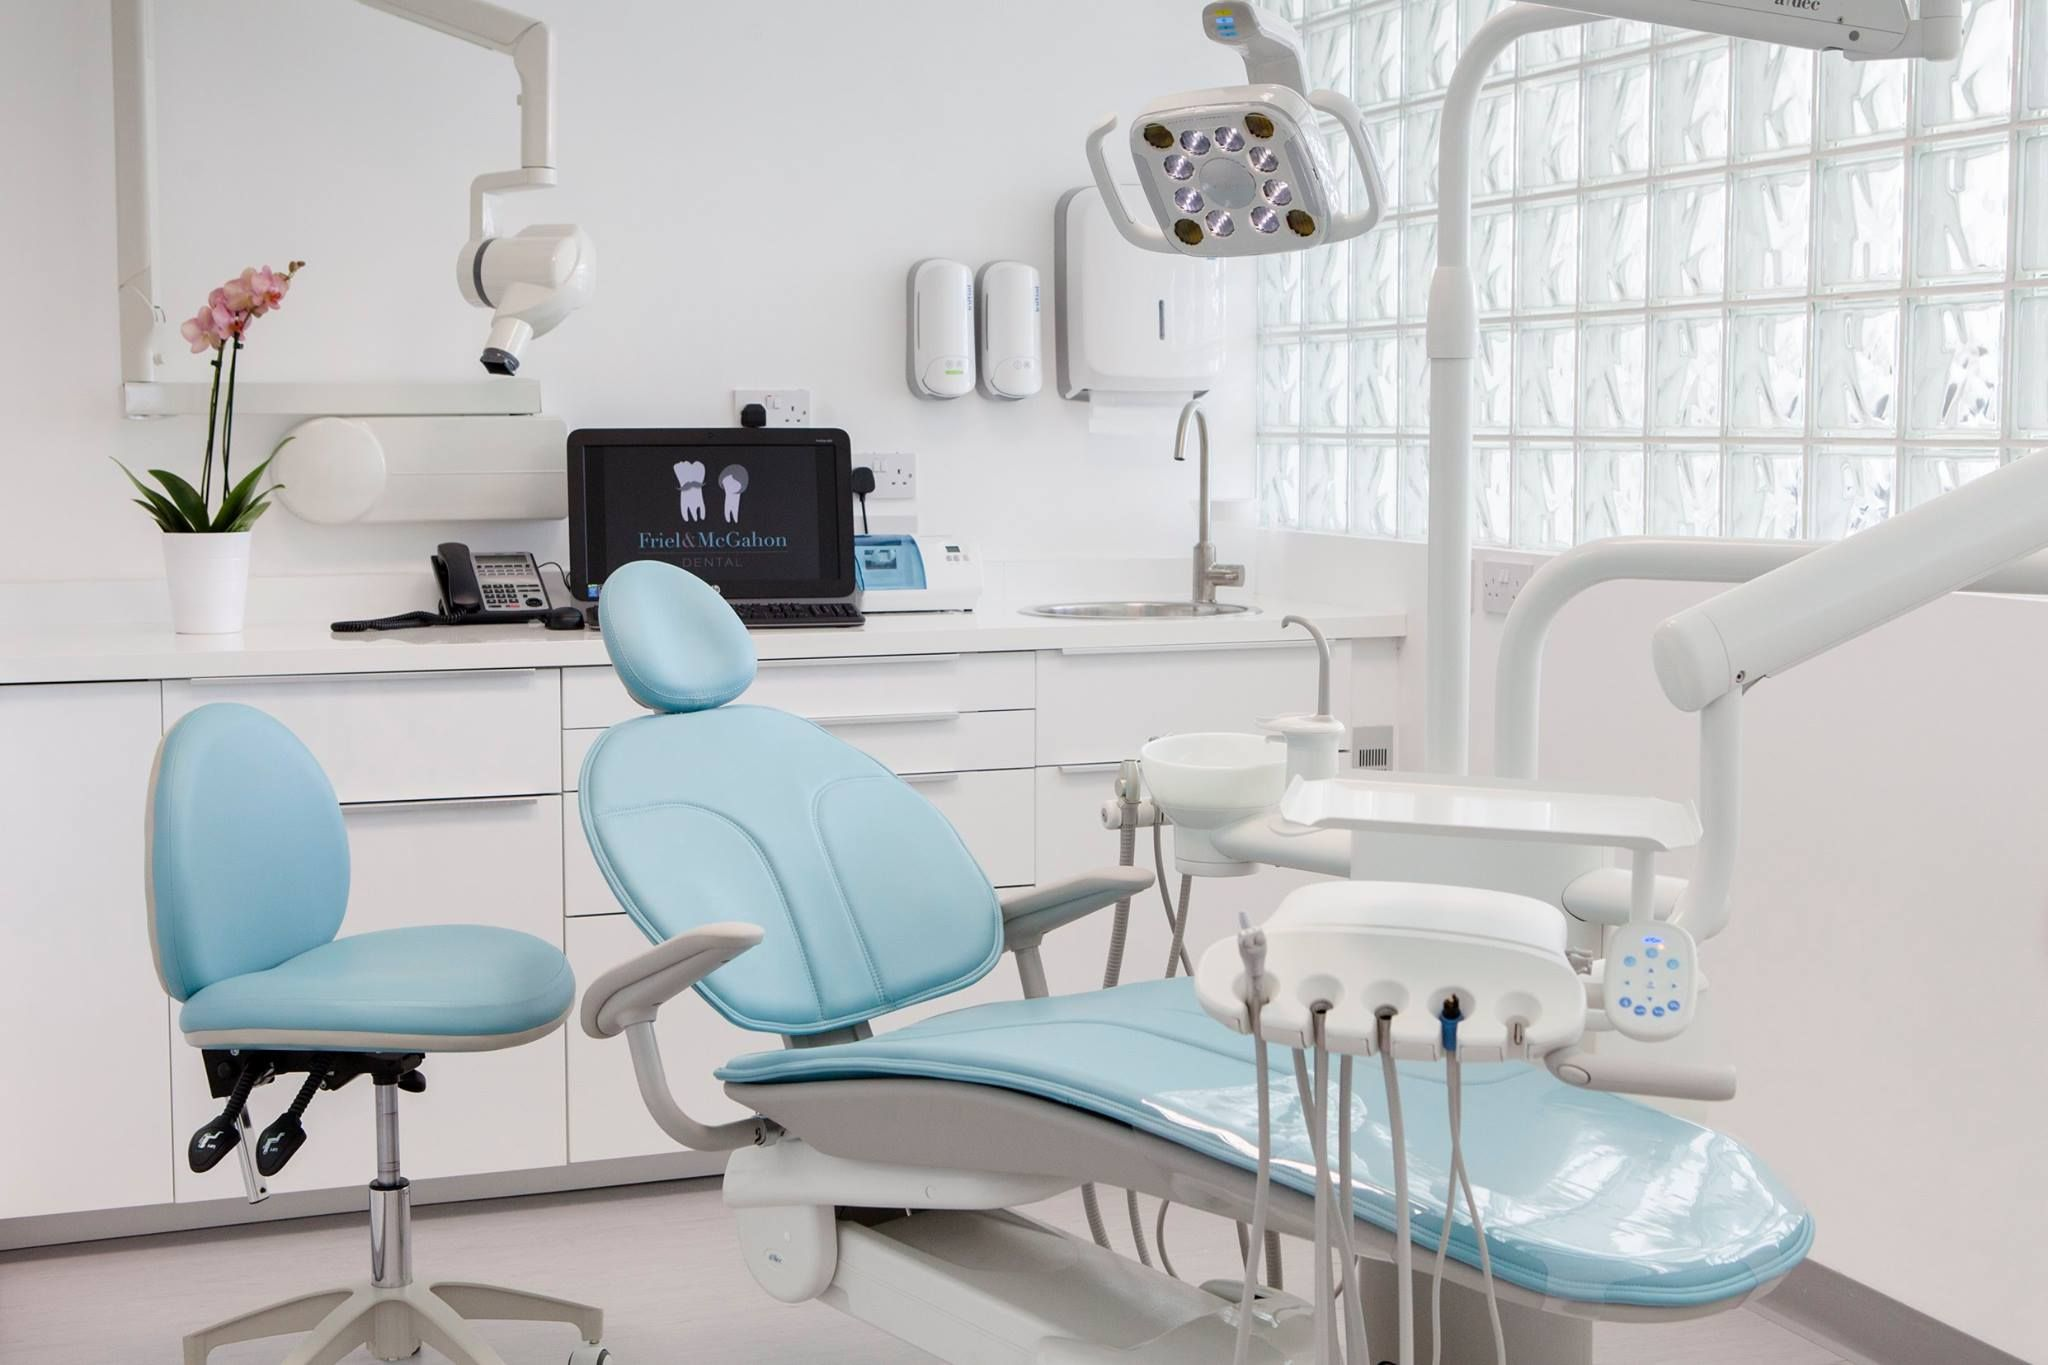 A-dec 300 dental chair with Cyan sewn upholstery. A-dec LED light & A-dec 300 dental chair with Cyan sewn upholstery. A-dec LED light ...